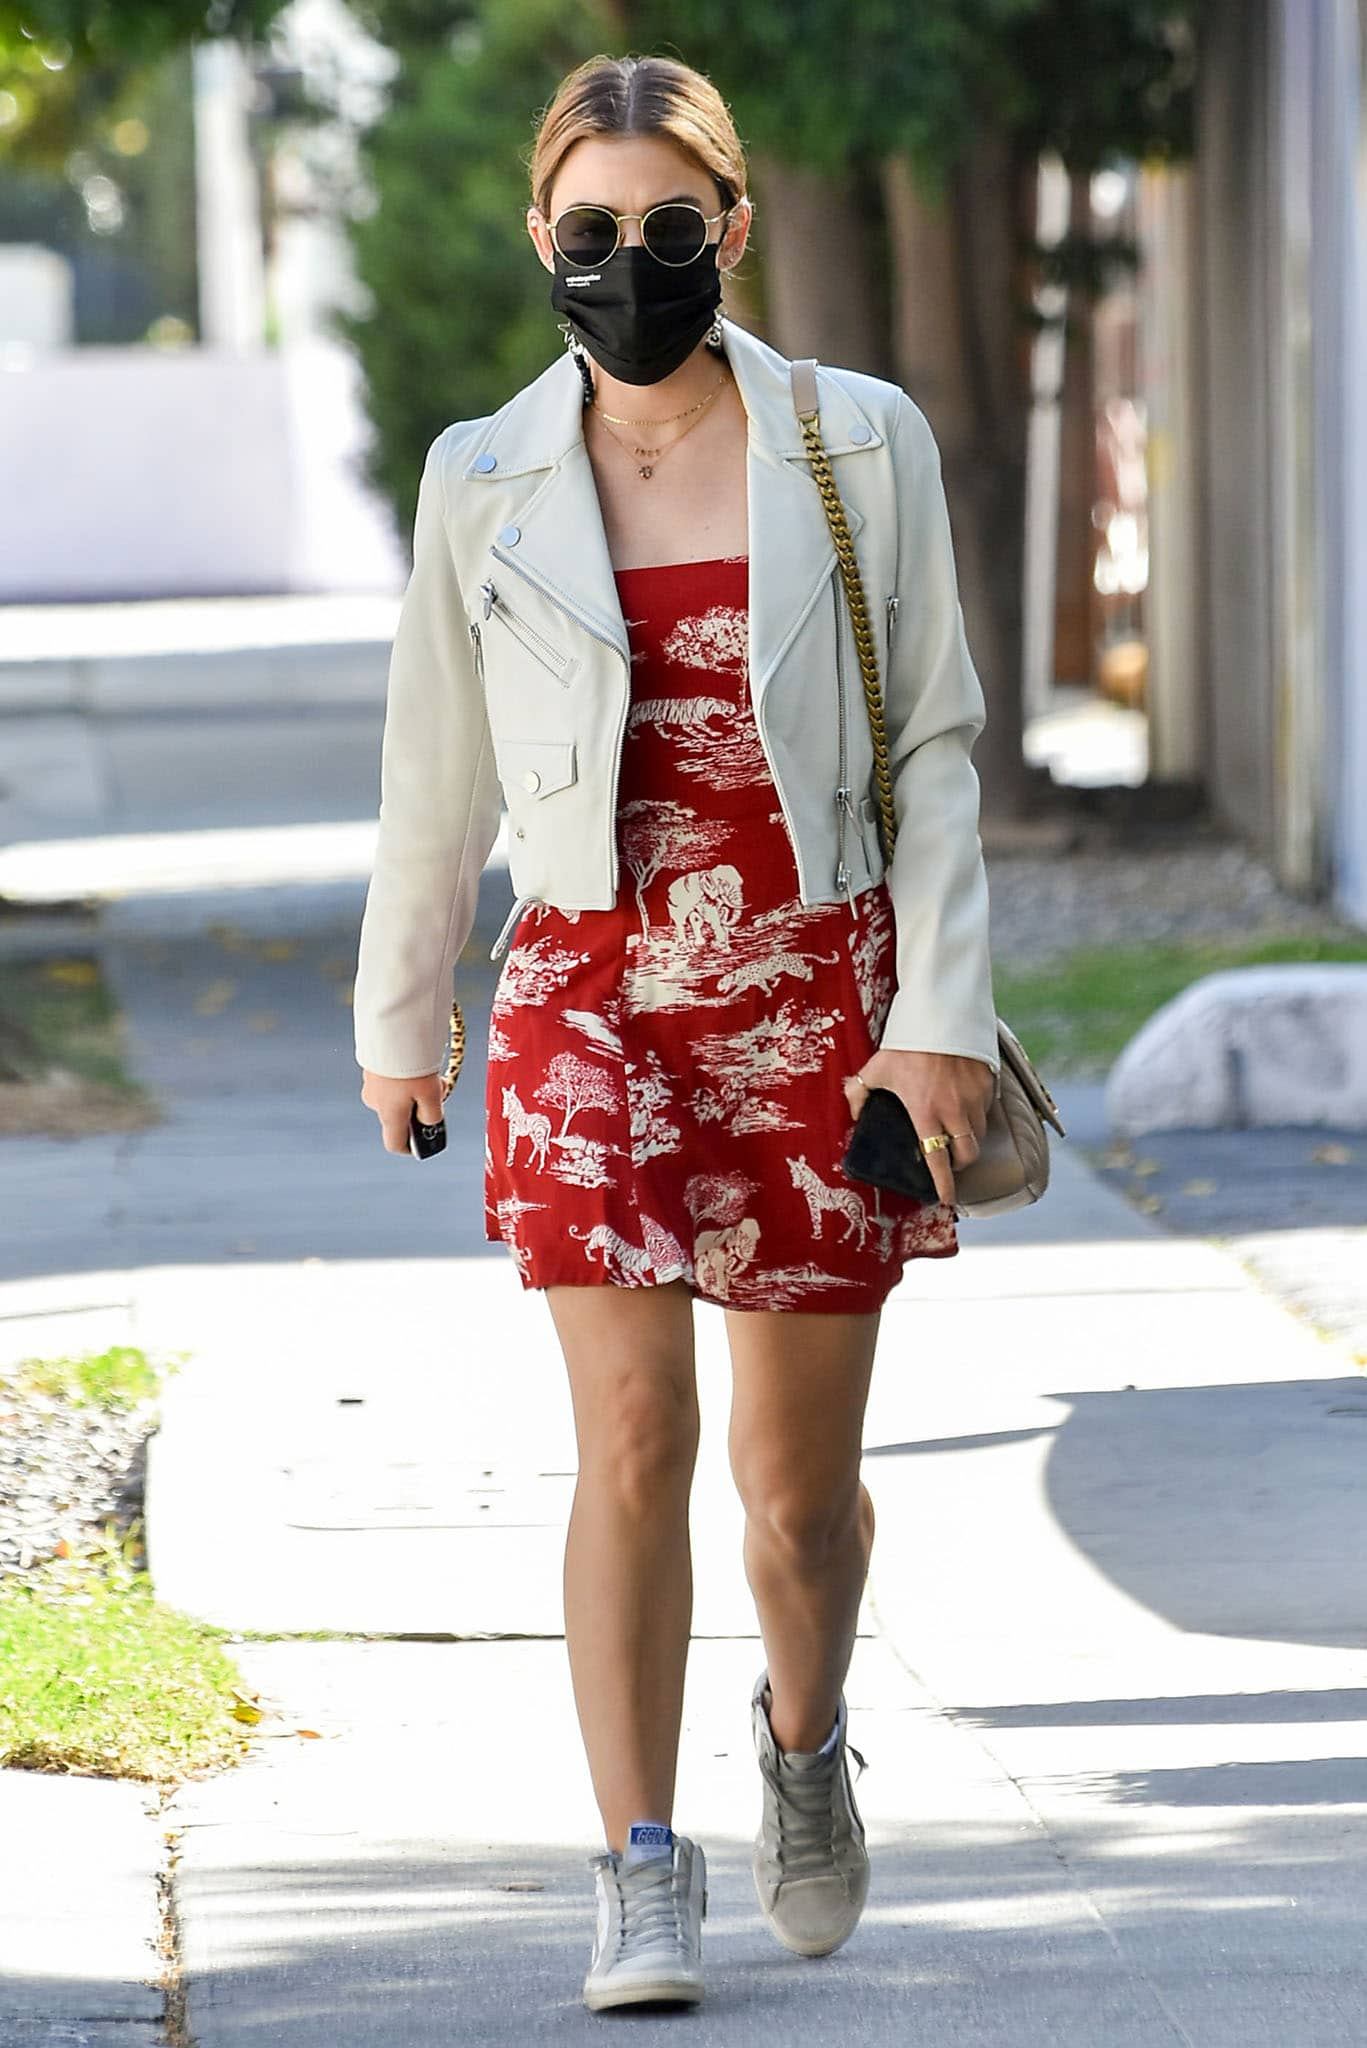 Lucy Hale looks stylish in a red Reformation mini dress and a white leather jacket